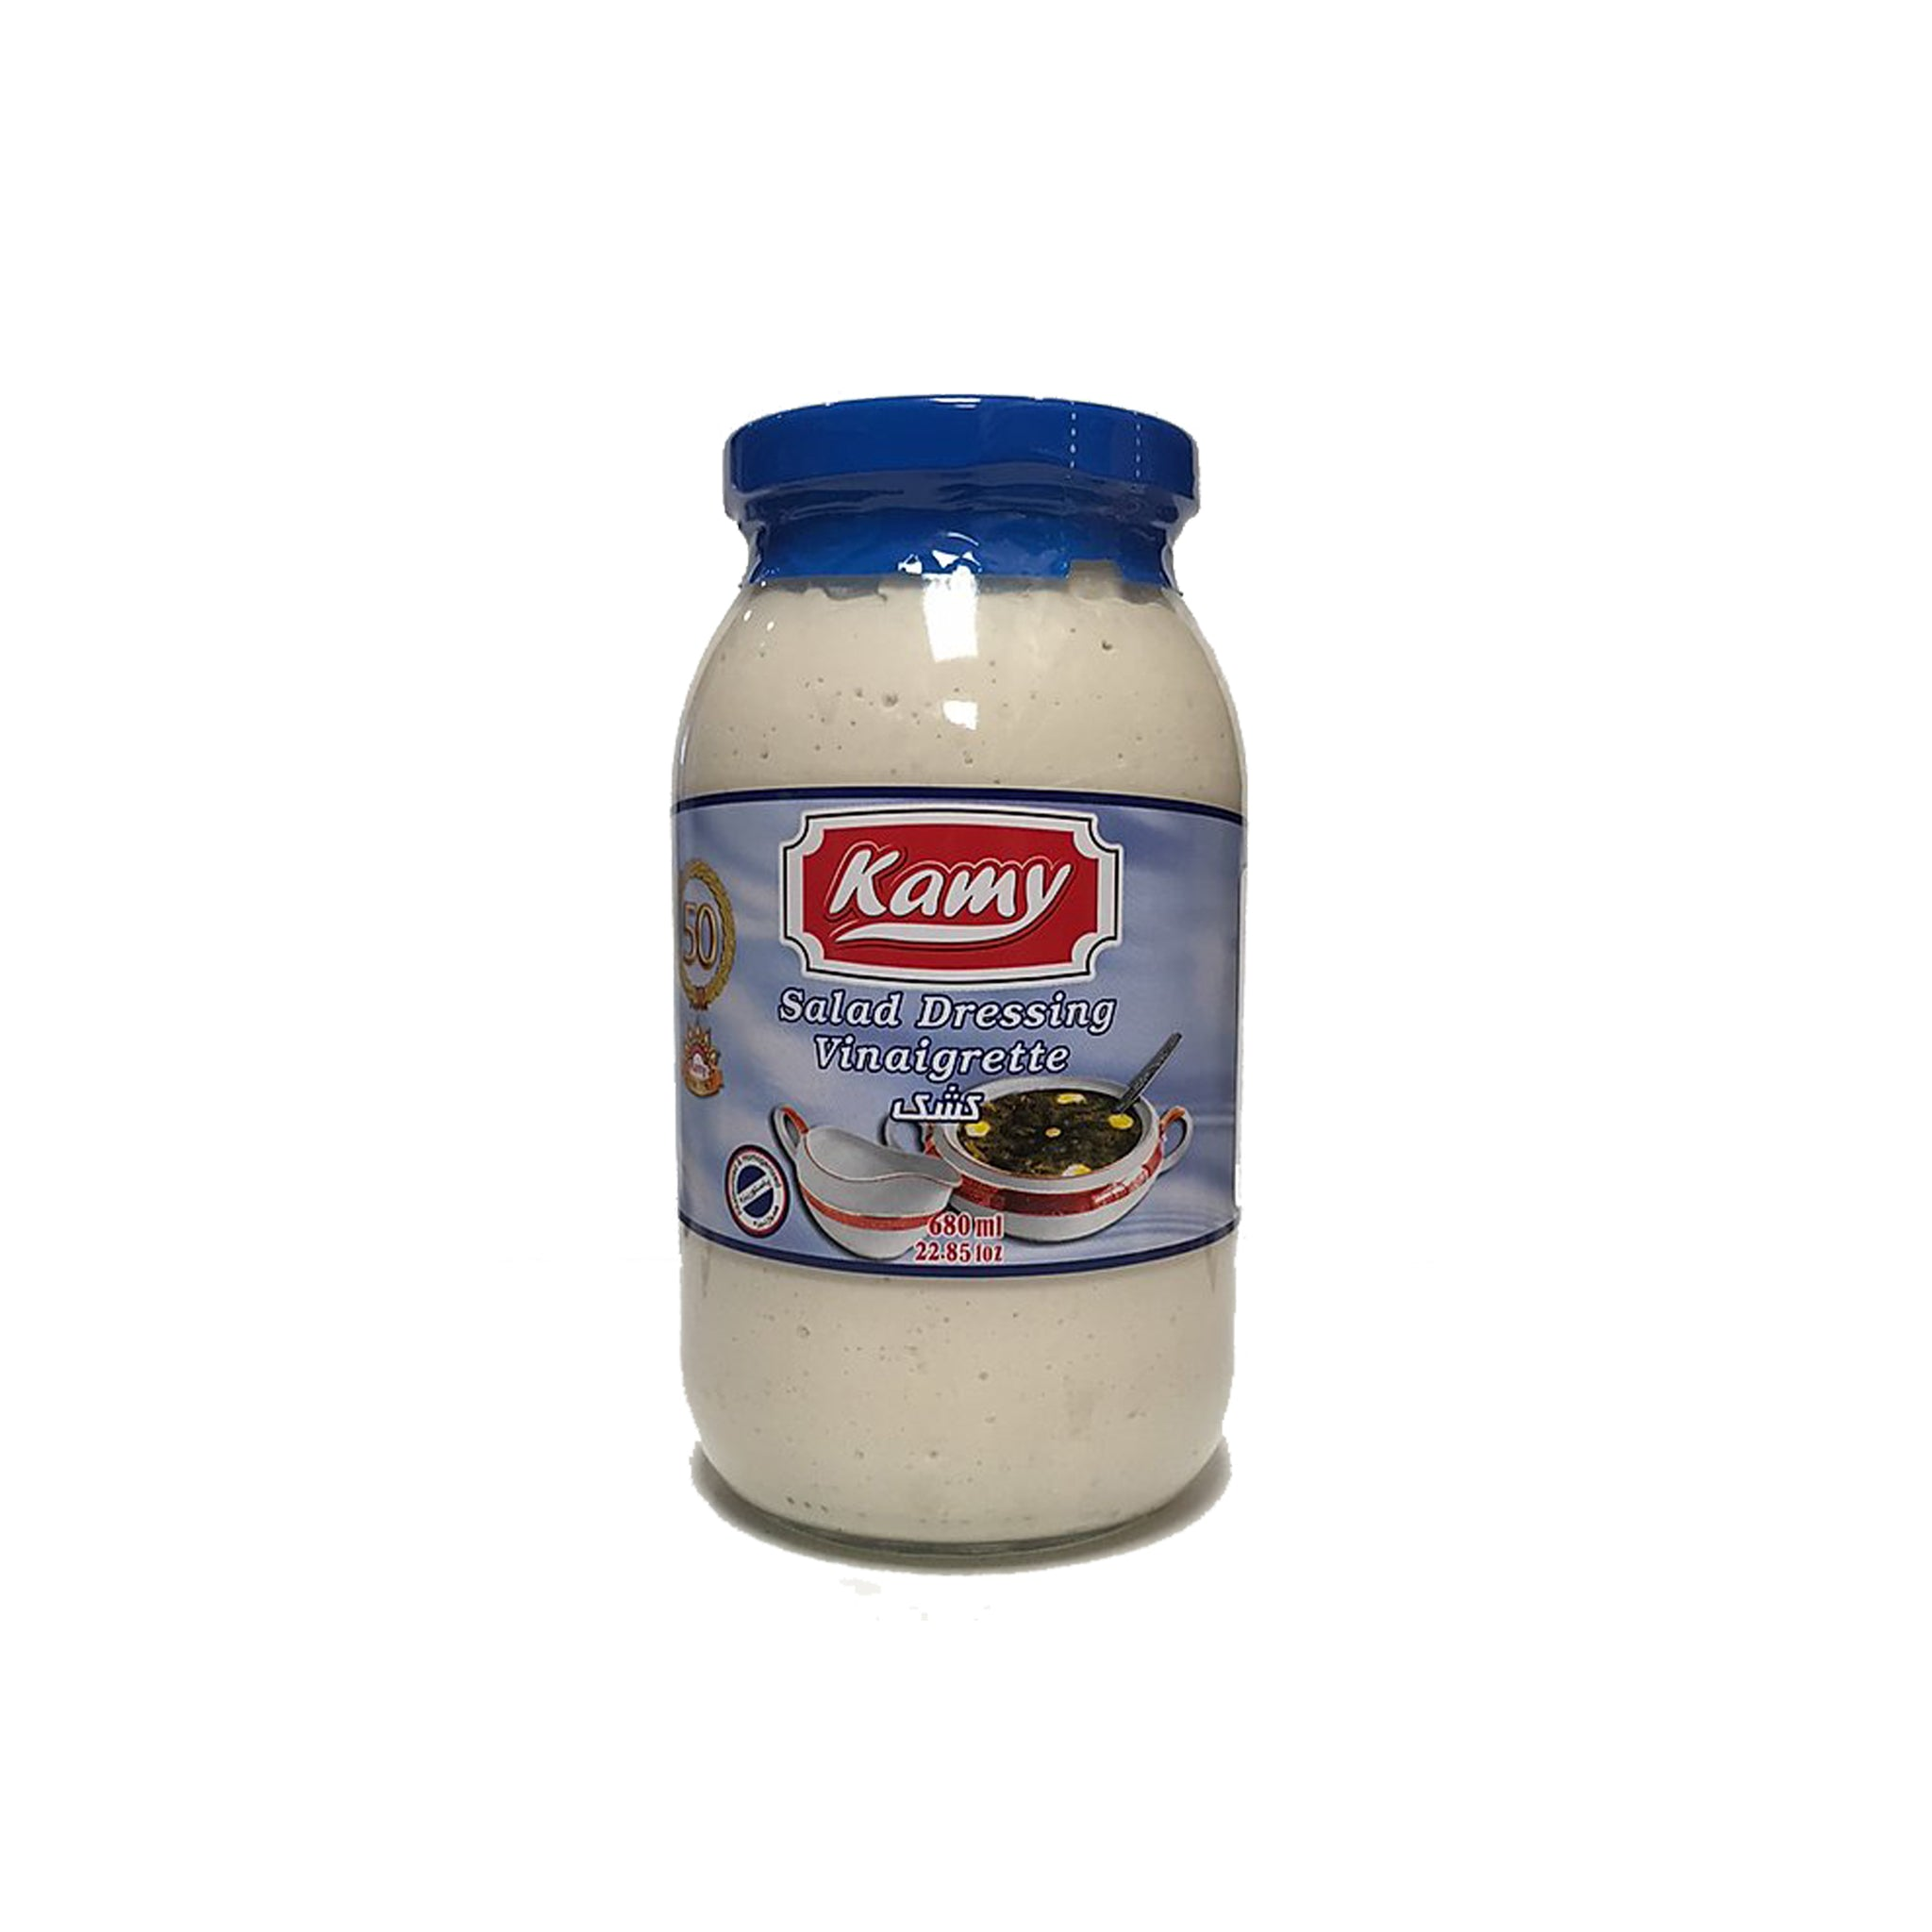 Kamy Salad Deressing 680ml (کشک کامی)